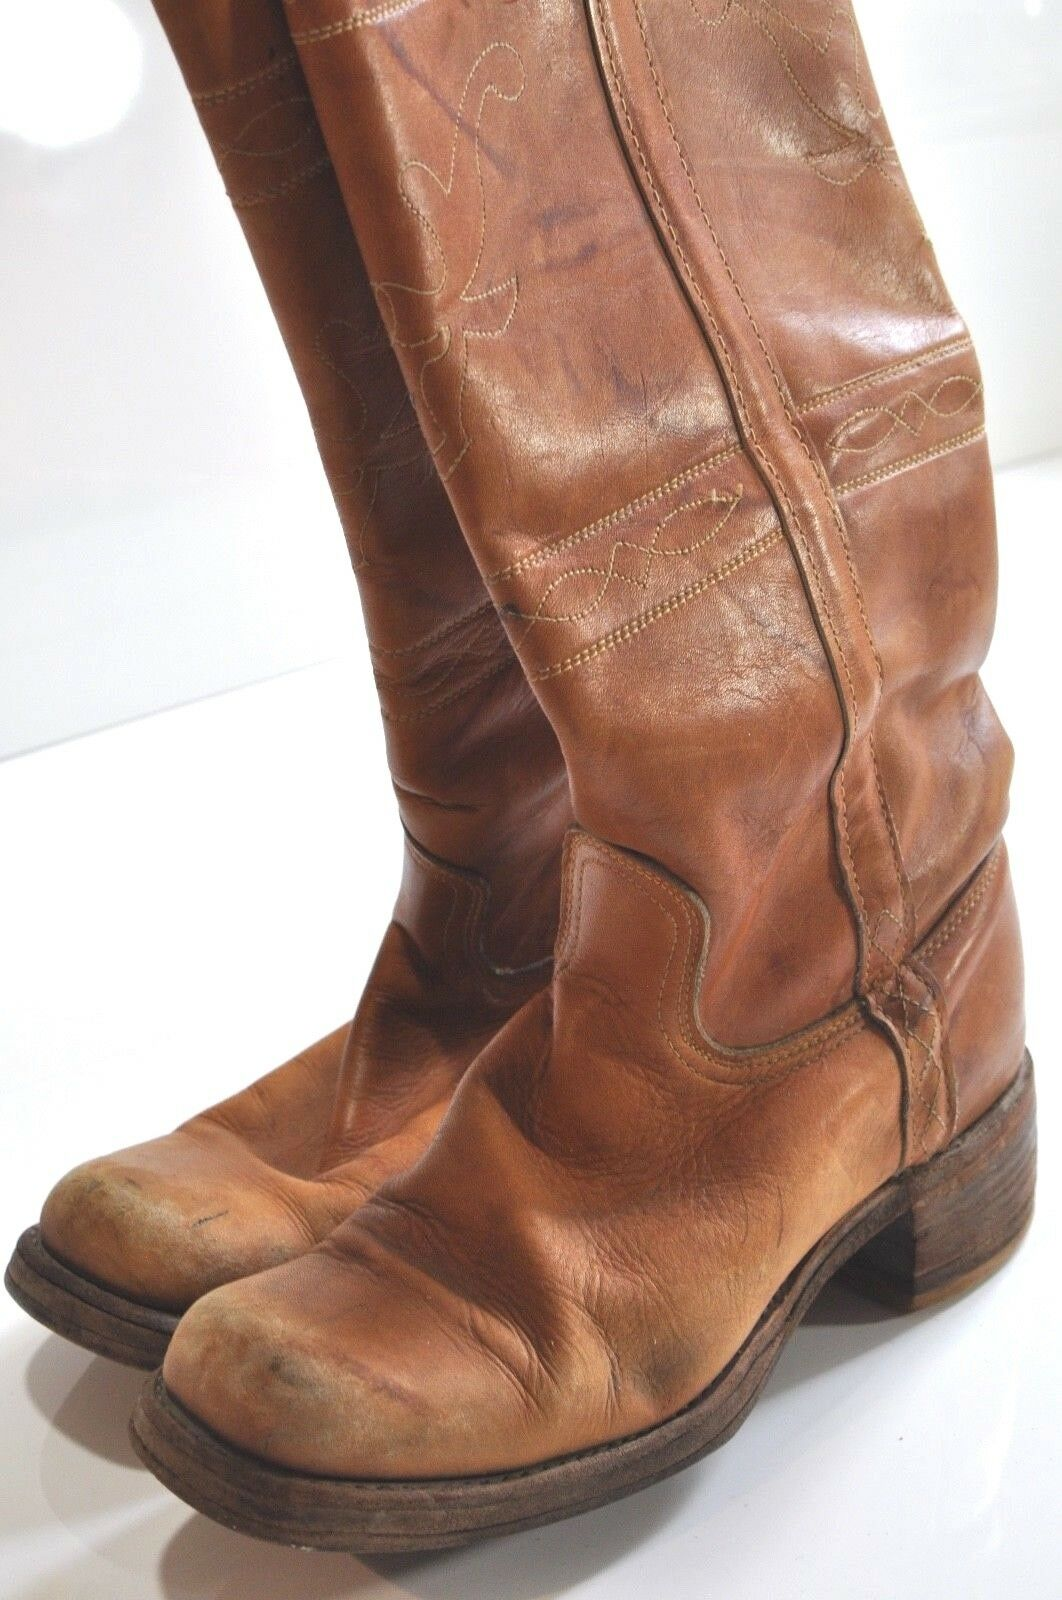 Womens brown leather boot size 10 made in in in USA cc2616